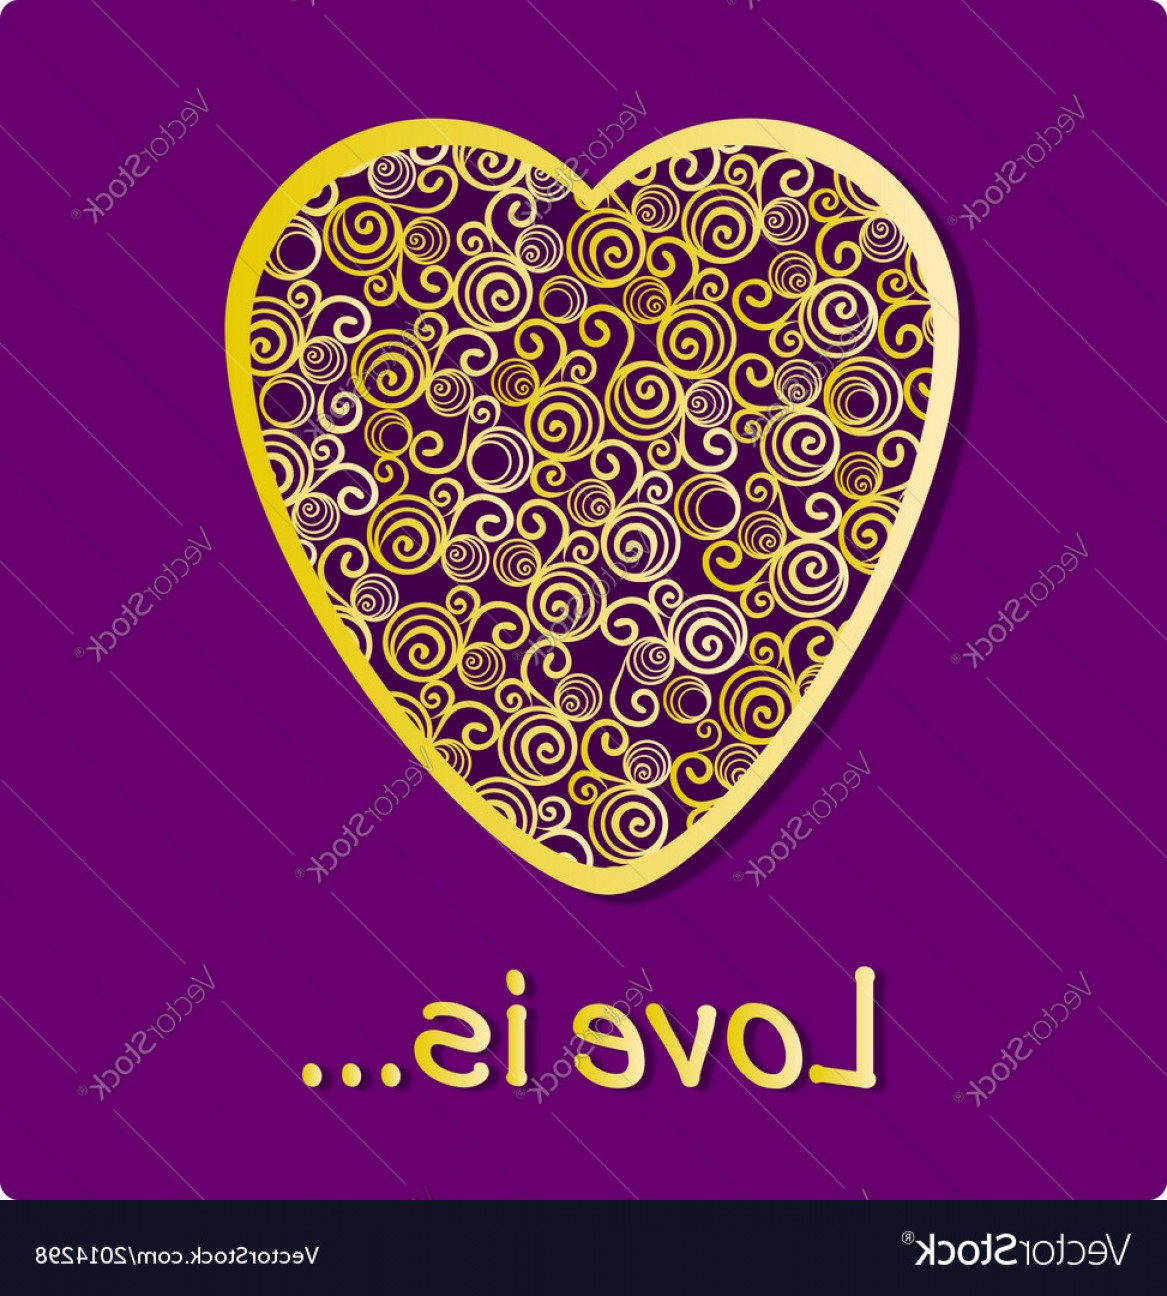 Vector Filigree Heart: Golden Ornamental Floral Filigree Heart Vector